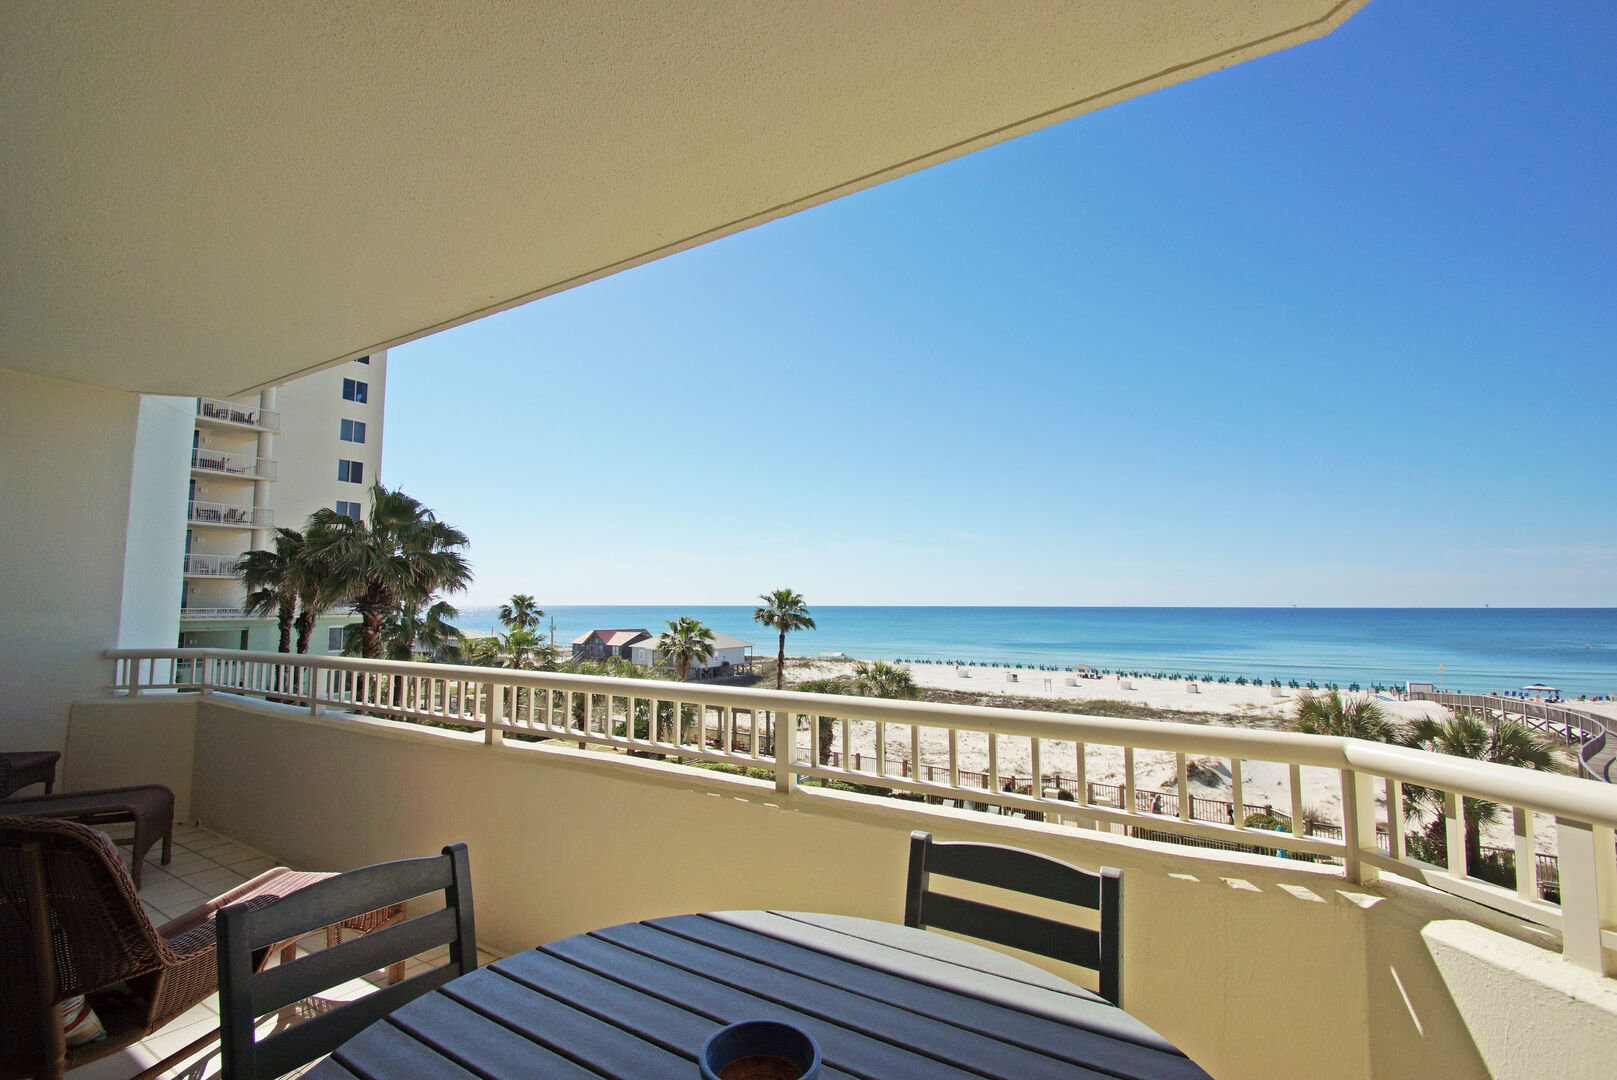 Enjoy the Balcony Views from our Fort Morgan Beach Front Rental